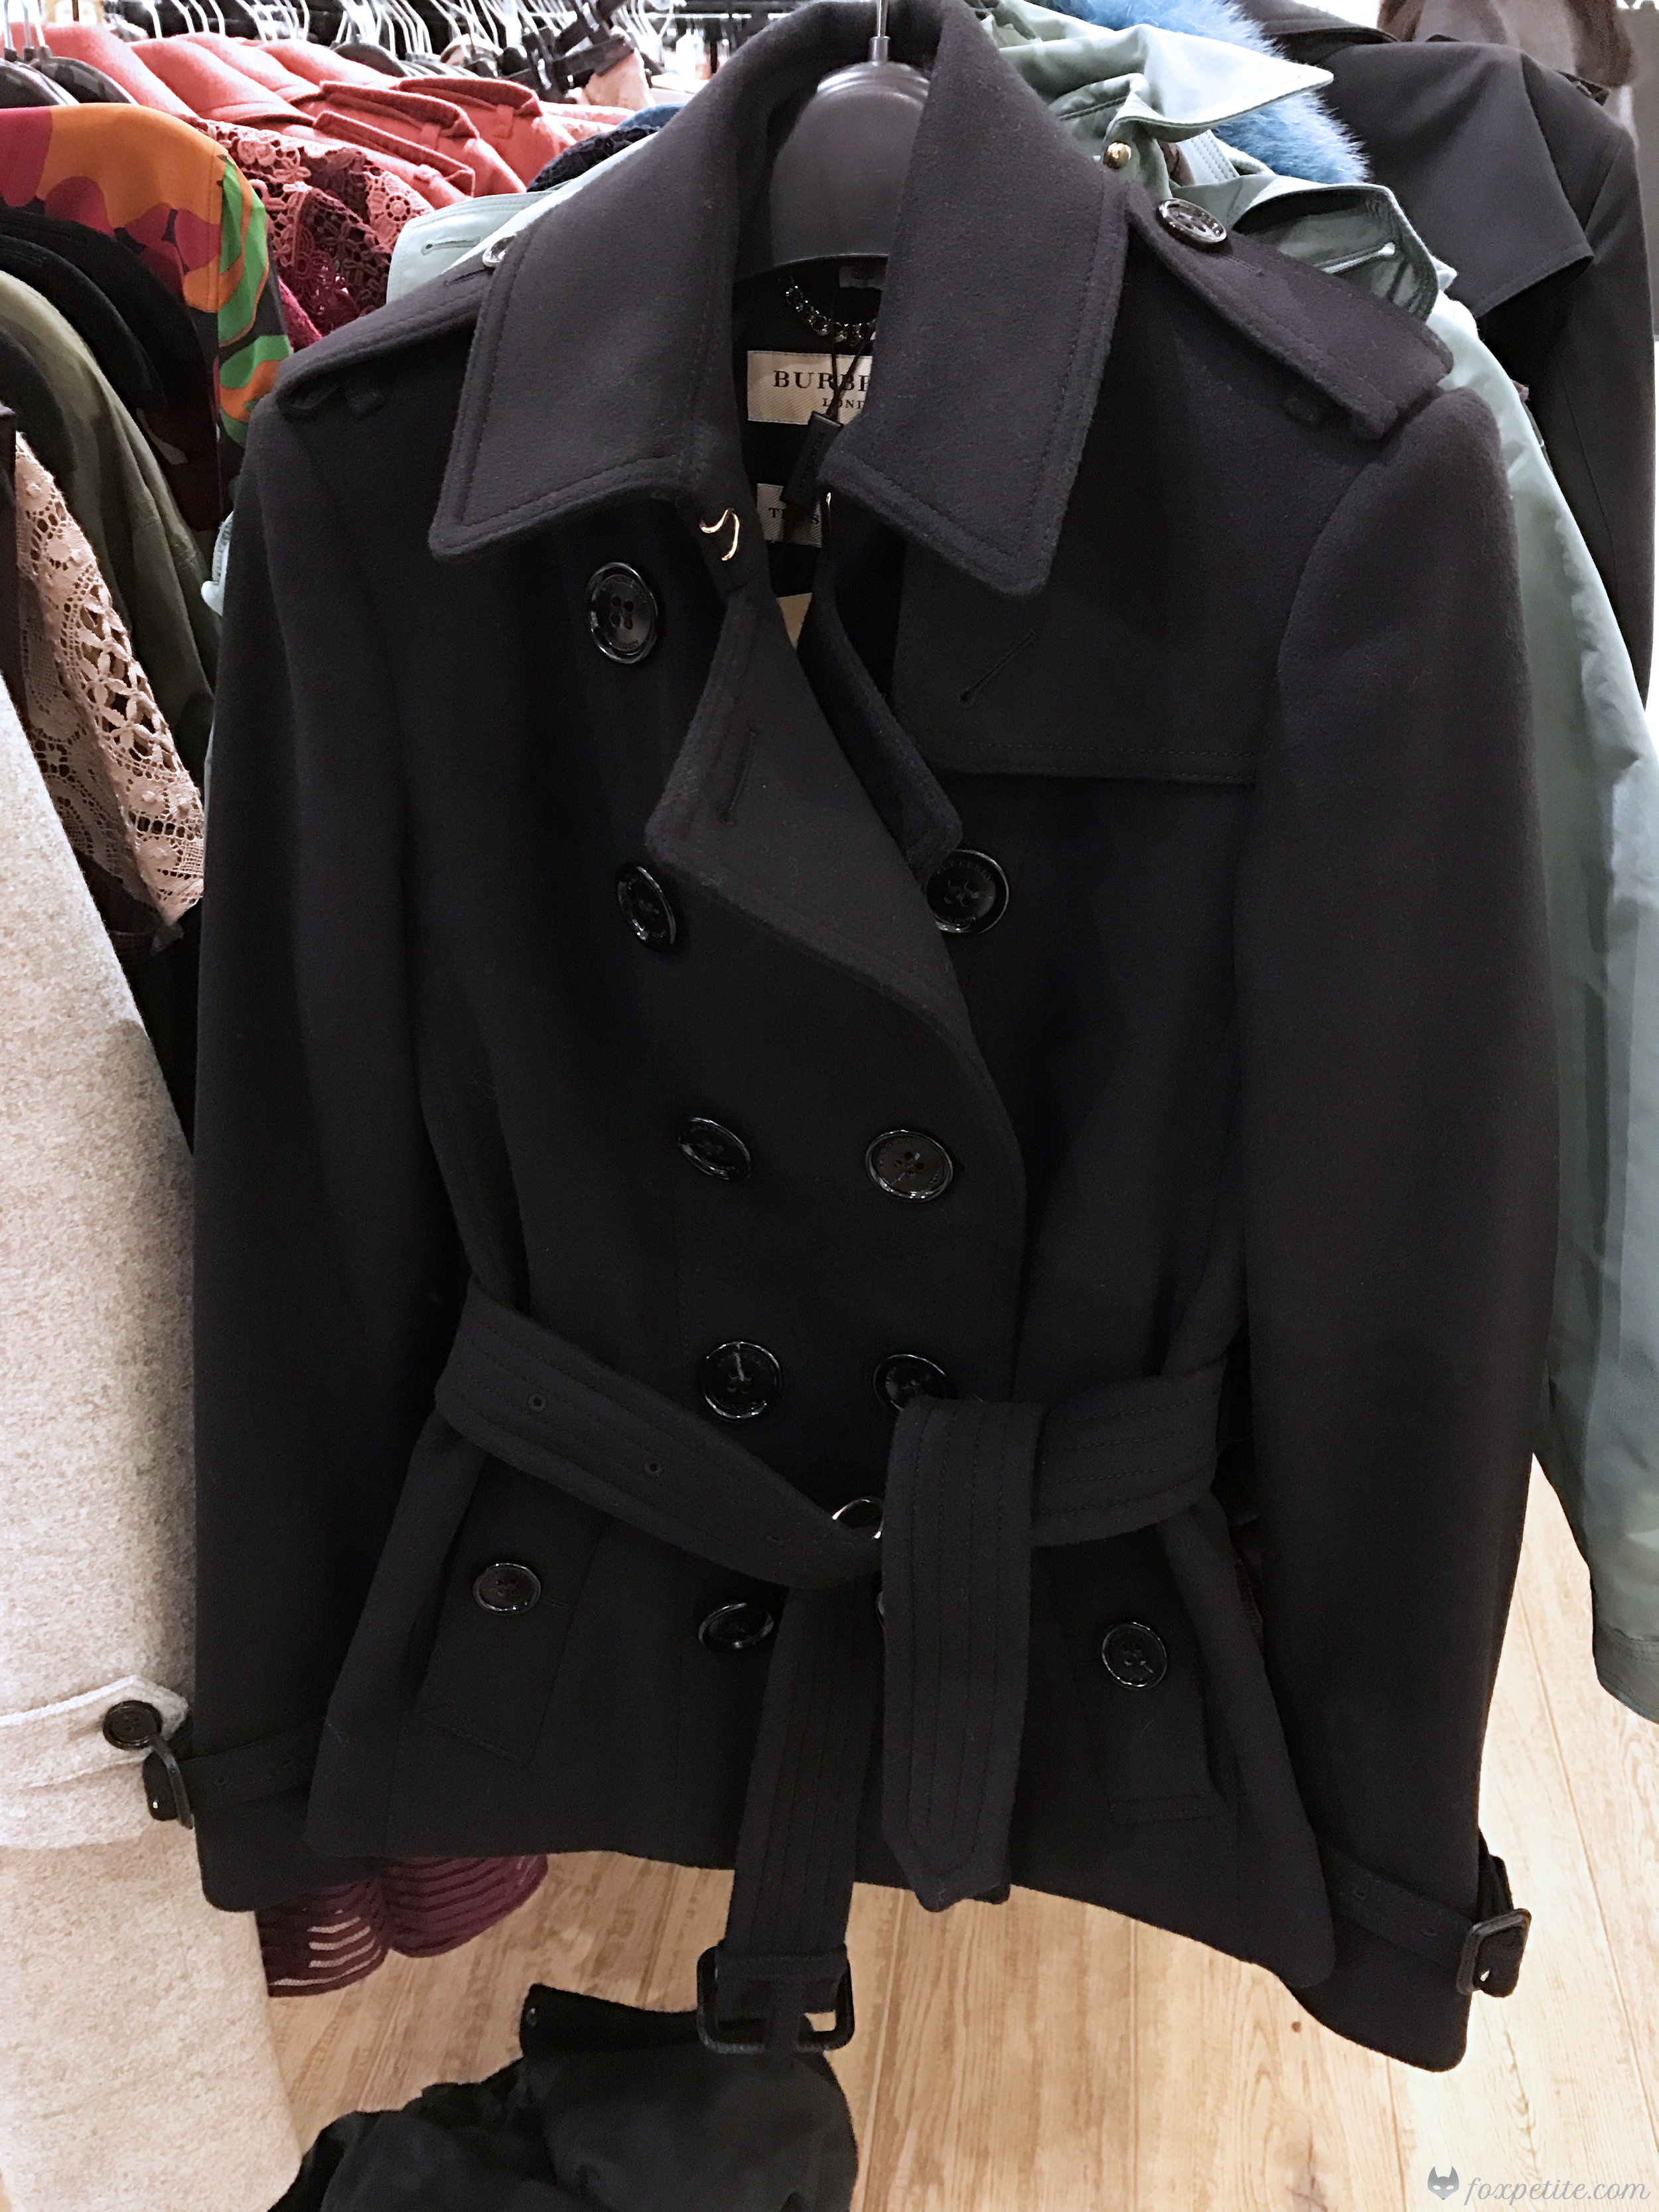 Burberry Sandringham-Fit Wool Cashmere Trench Jacket in black, USA size 2 (  here  )